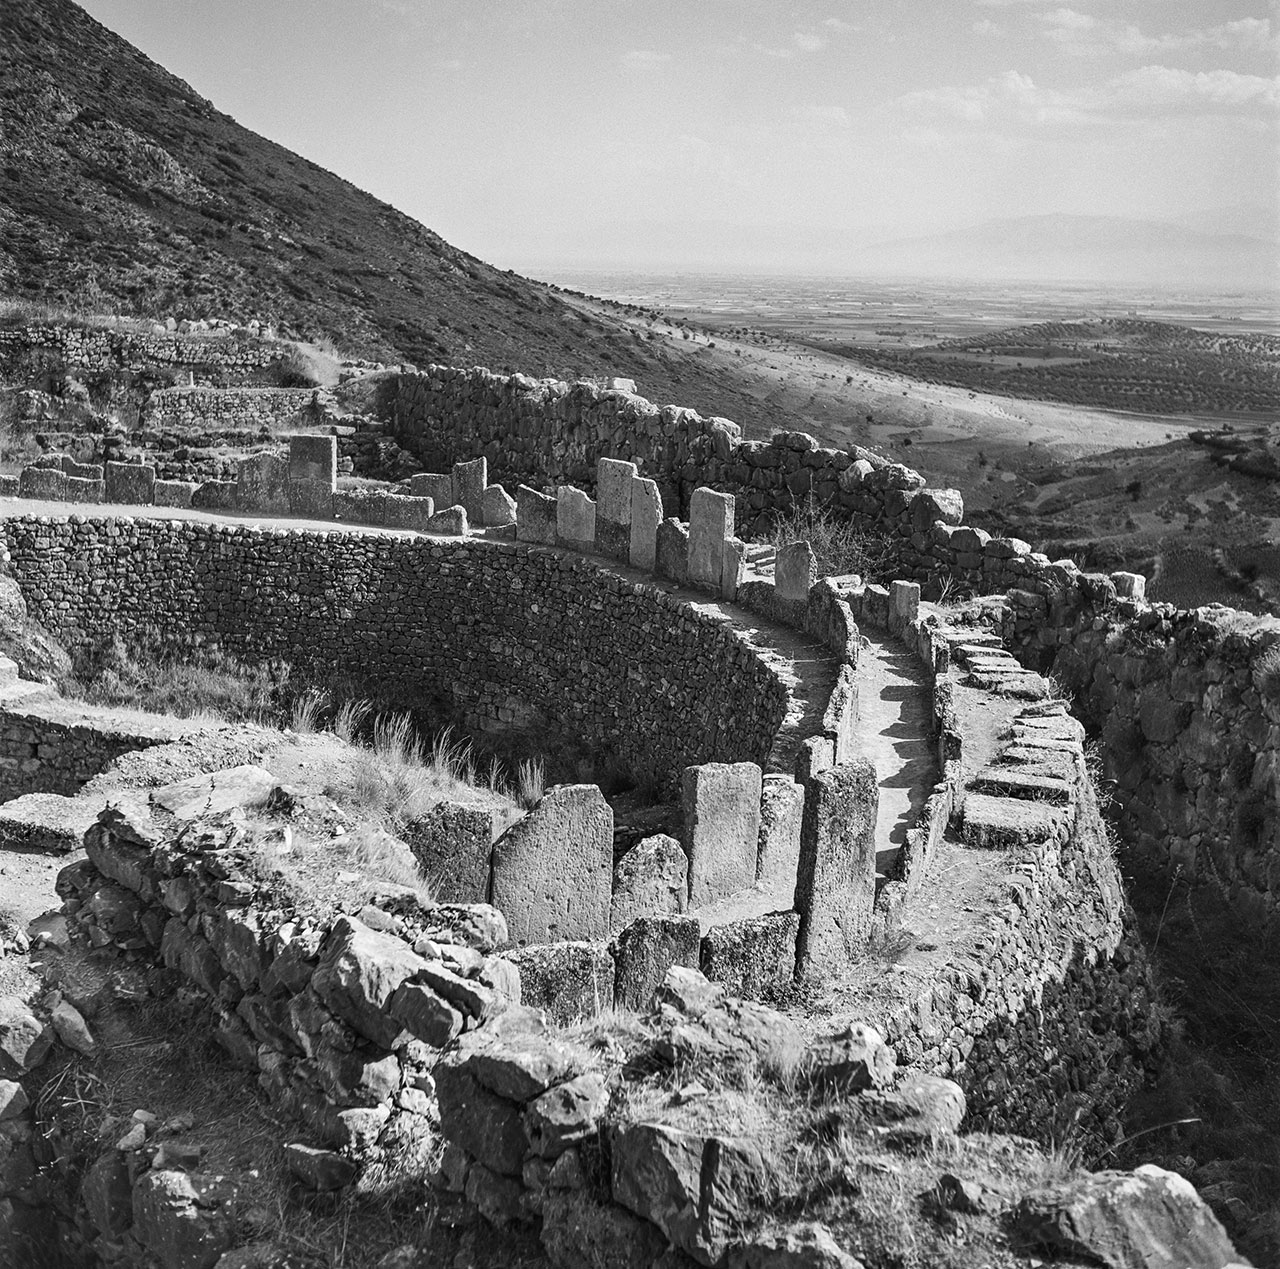 Mycenae 1955. Photo © Robert McCabe.